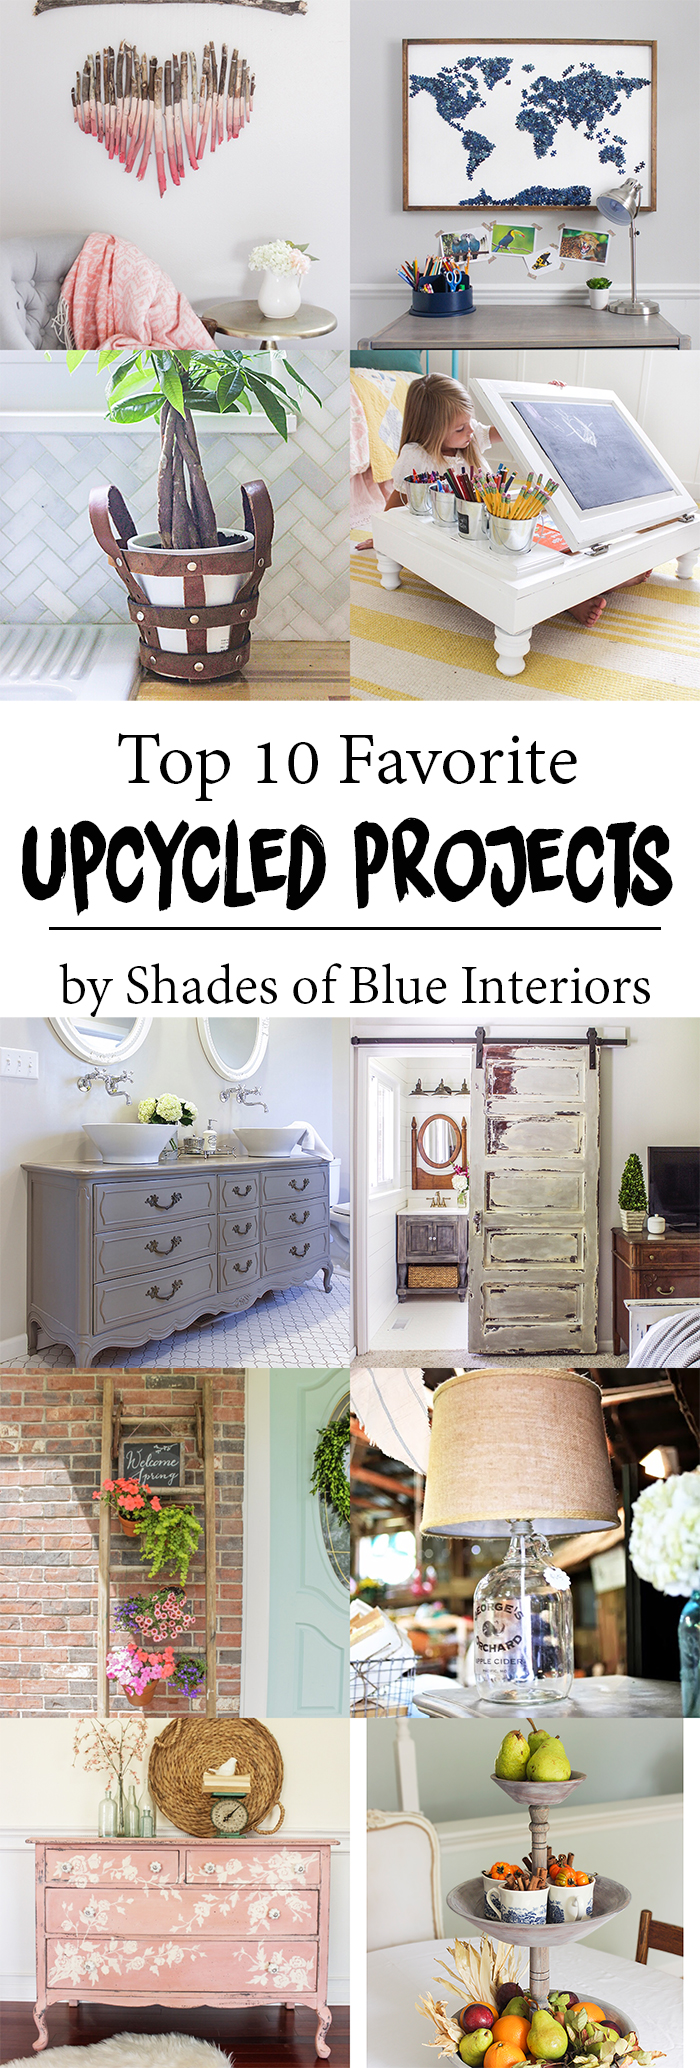 Top-10-Favorite-Upcycled-Projects